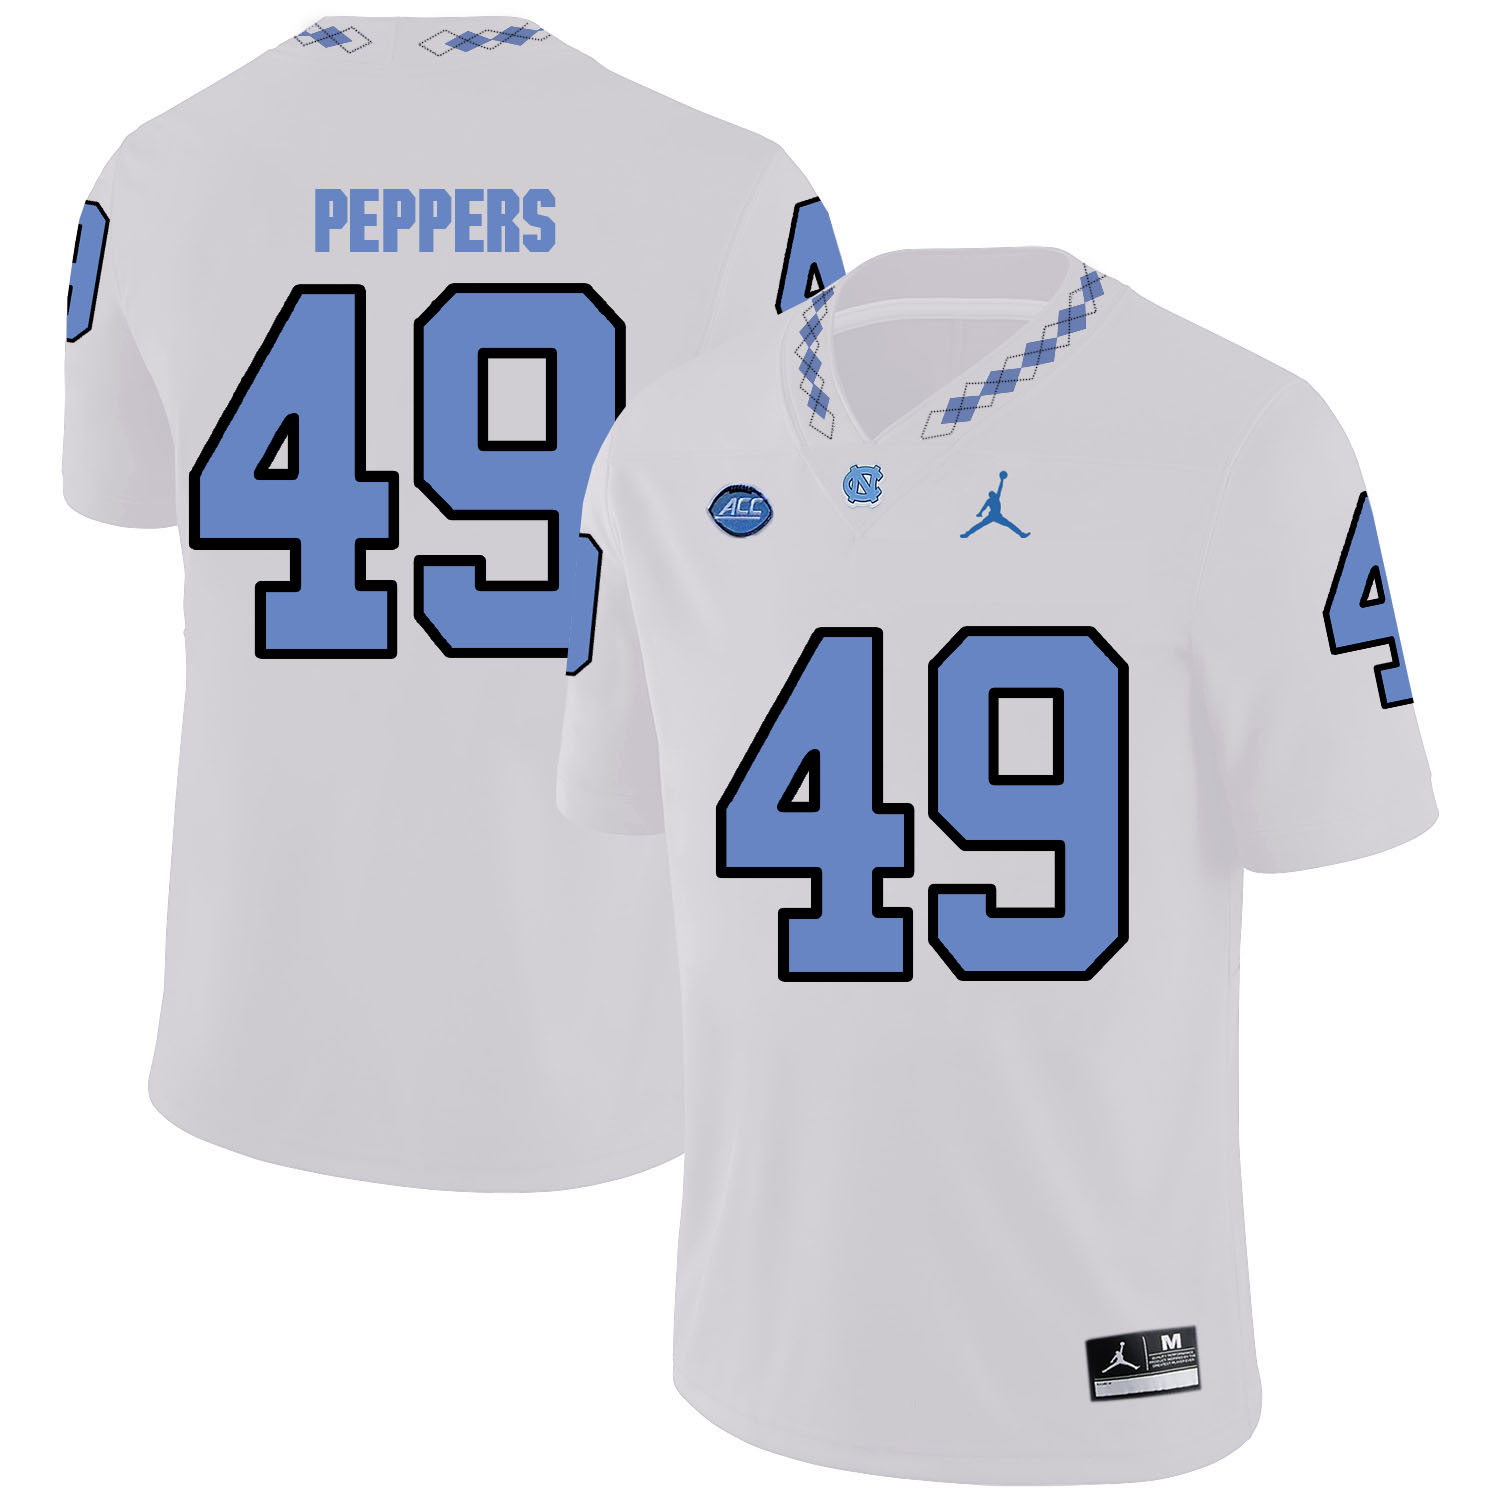 North Carolina Tar Heels 49 White Peppers Blue College Football Jersey